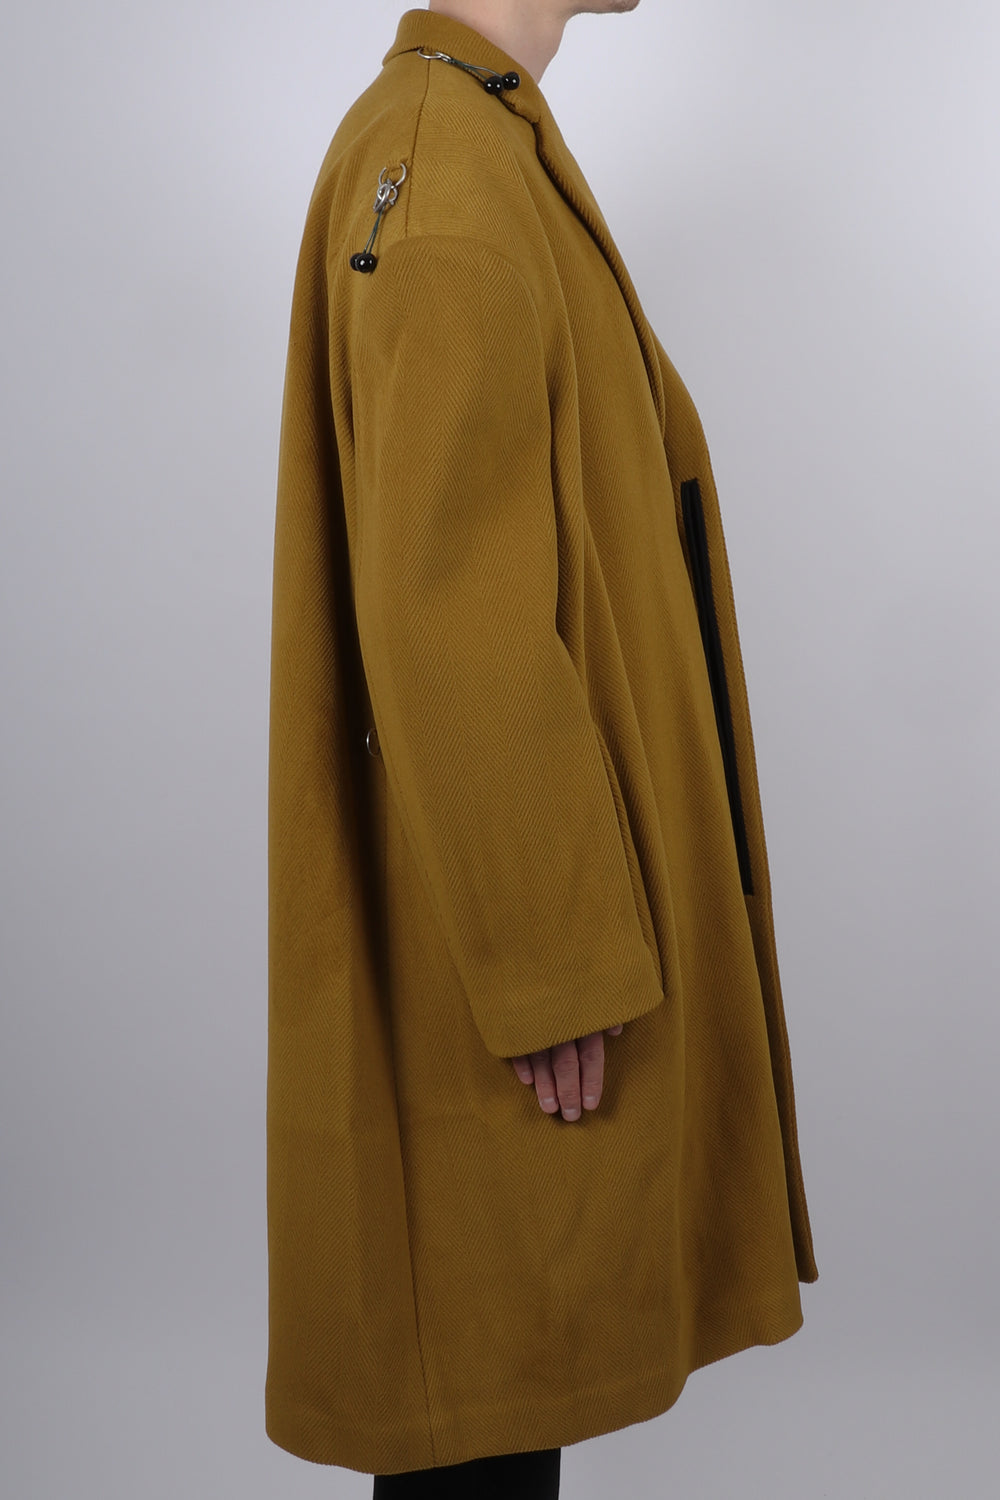 Raf Simons Back Rings A-Line Coat In Pistache